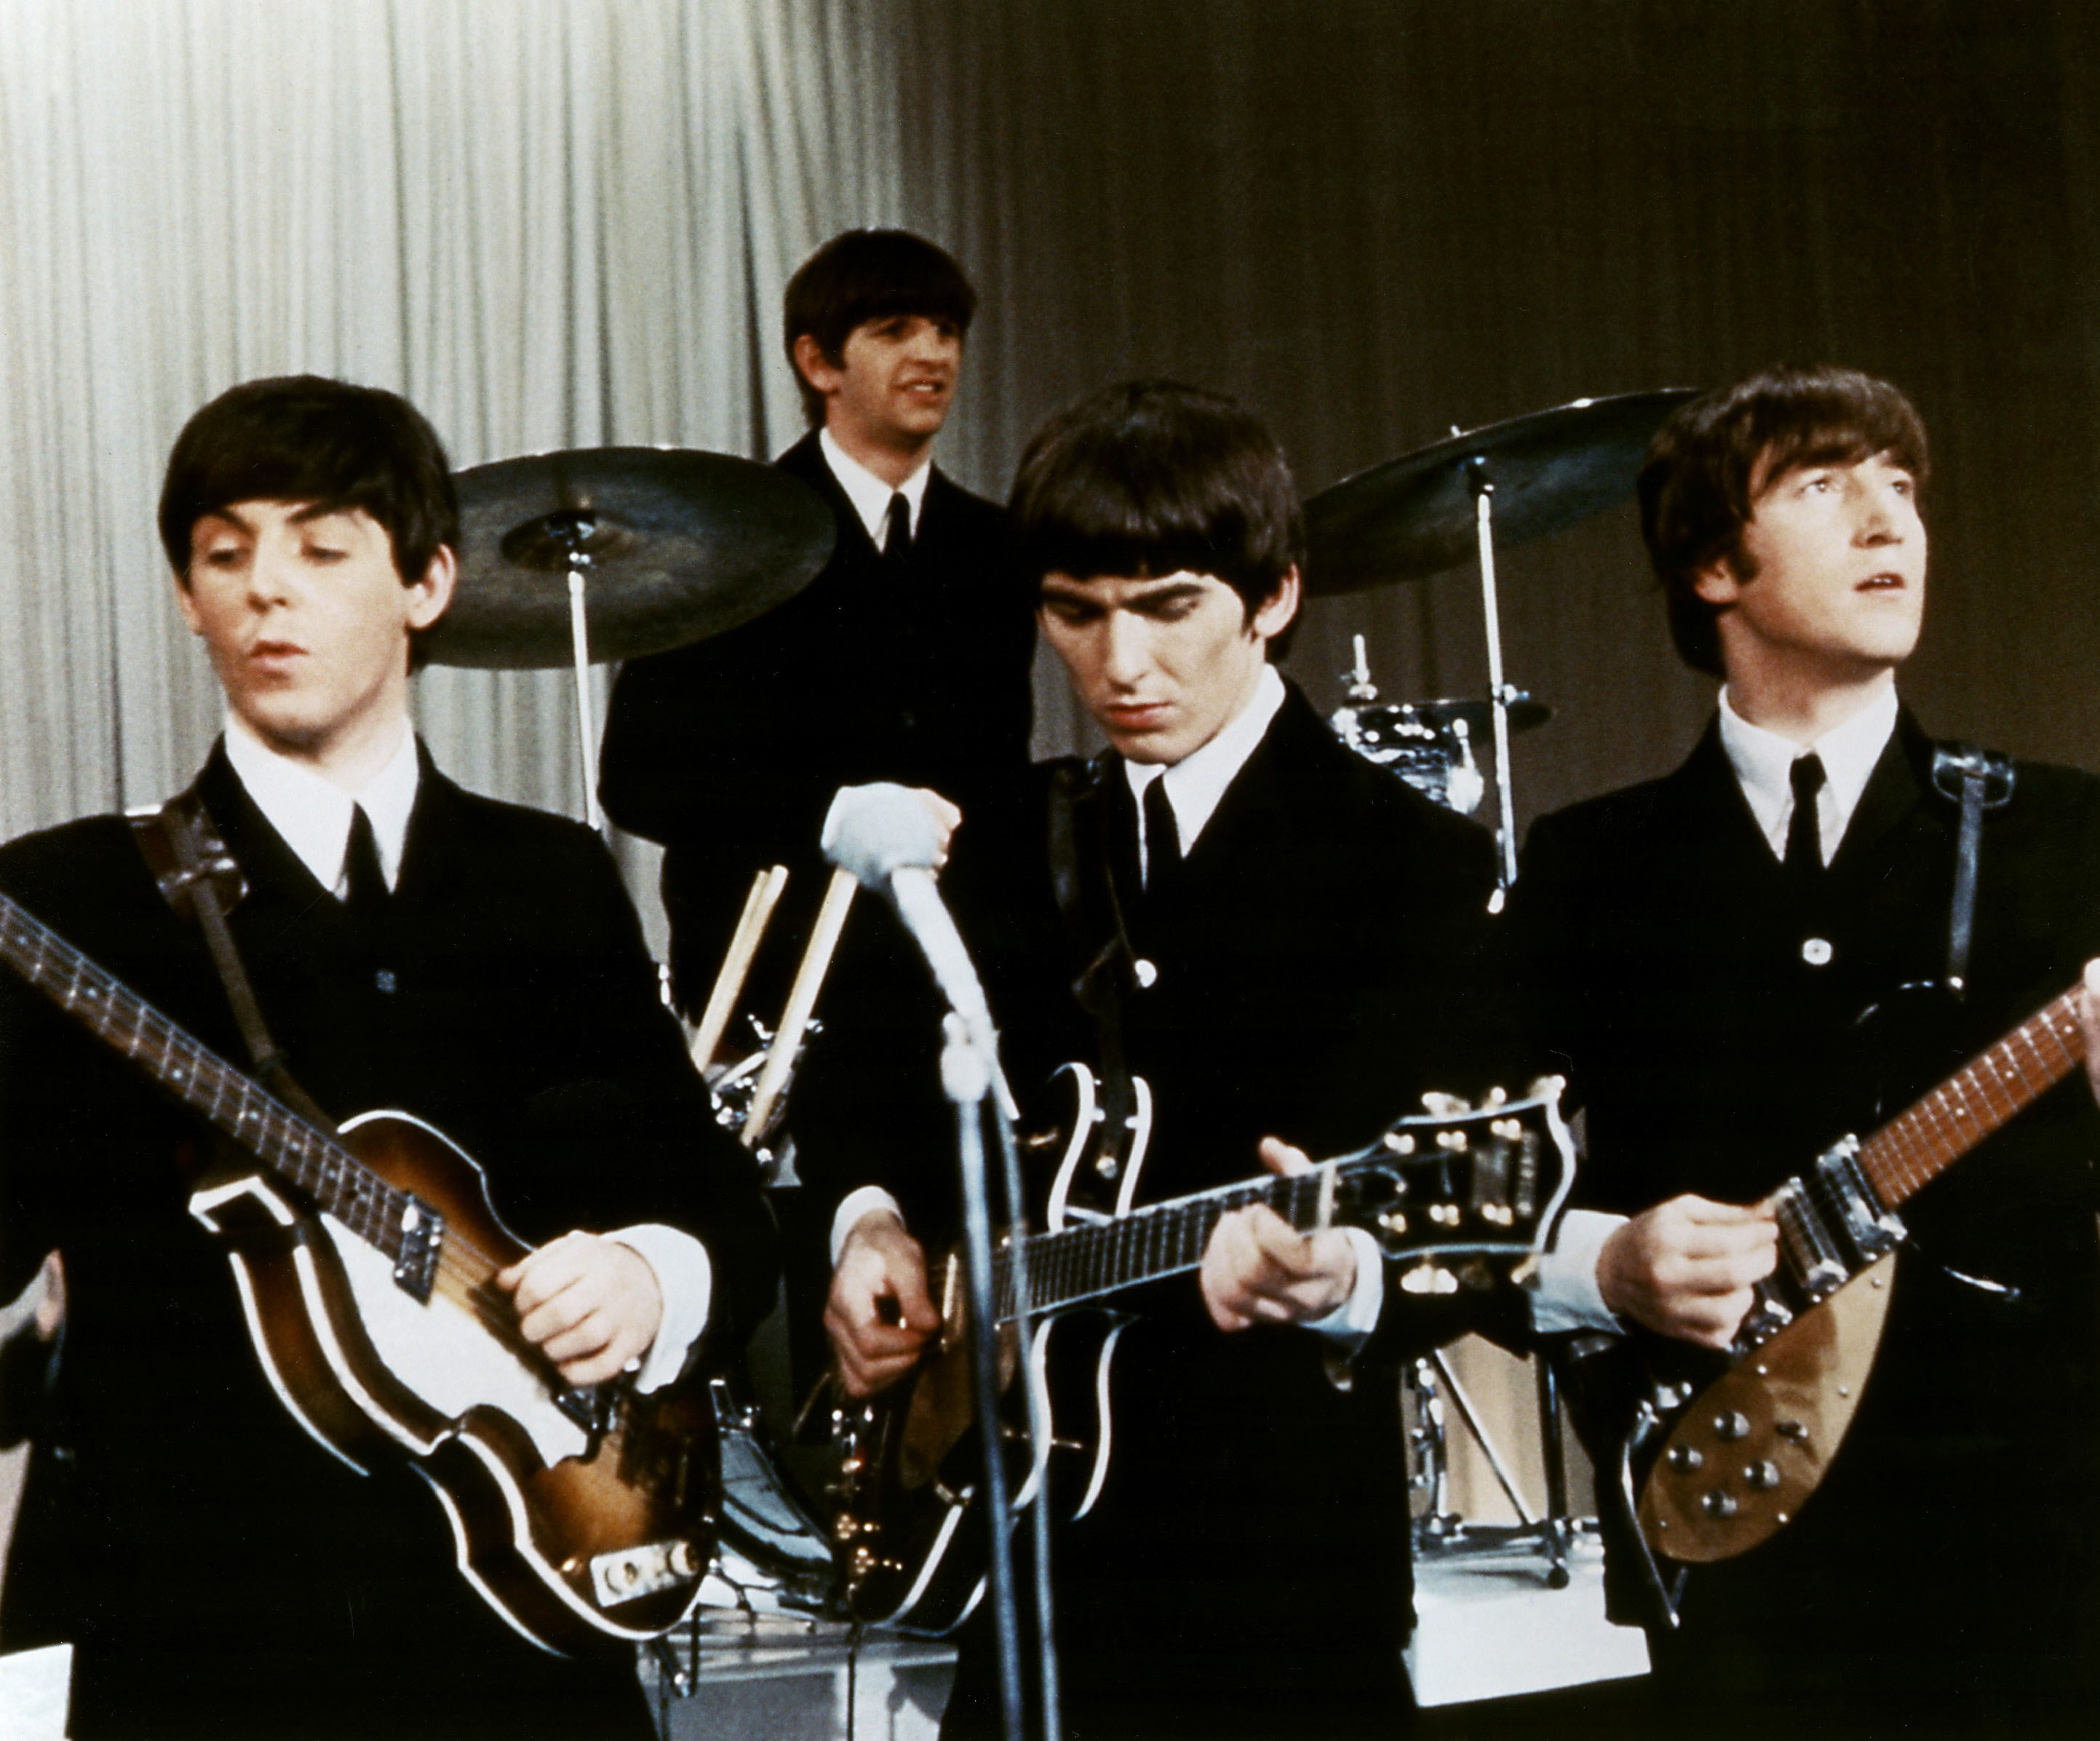 Beatles The 27121960 1141970 British Band With Paul McCartney Ringo Starr George Harrison John Lennon Live Perform